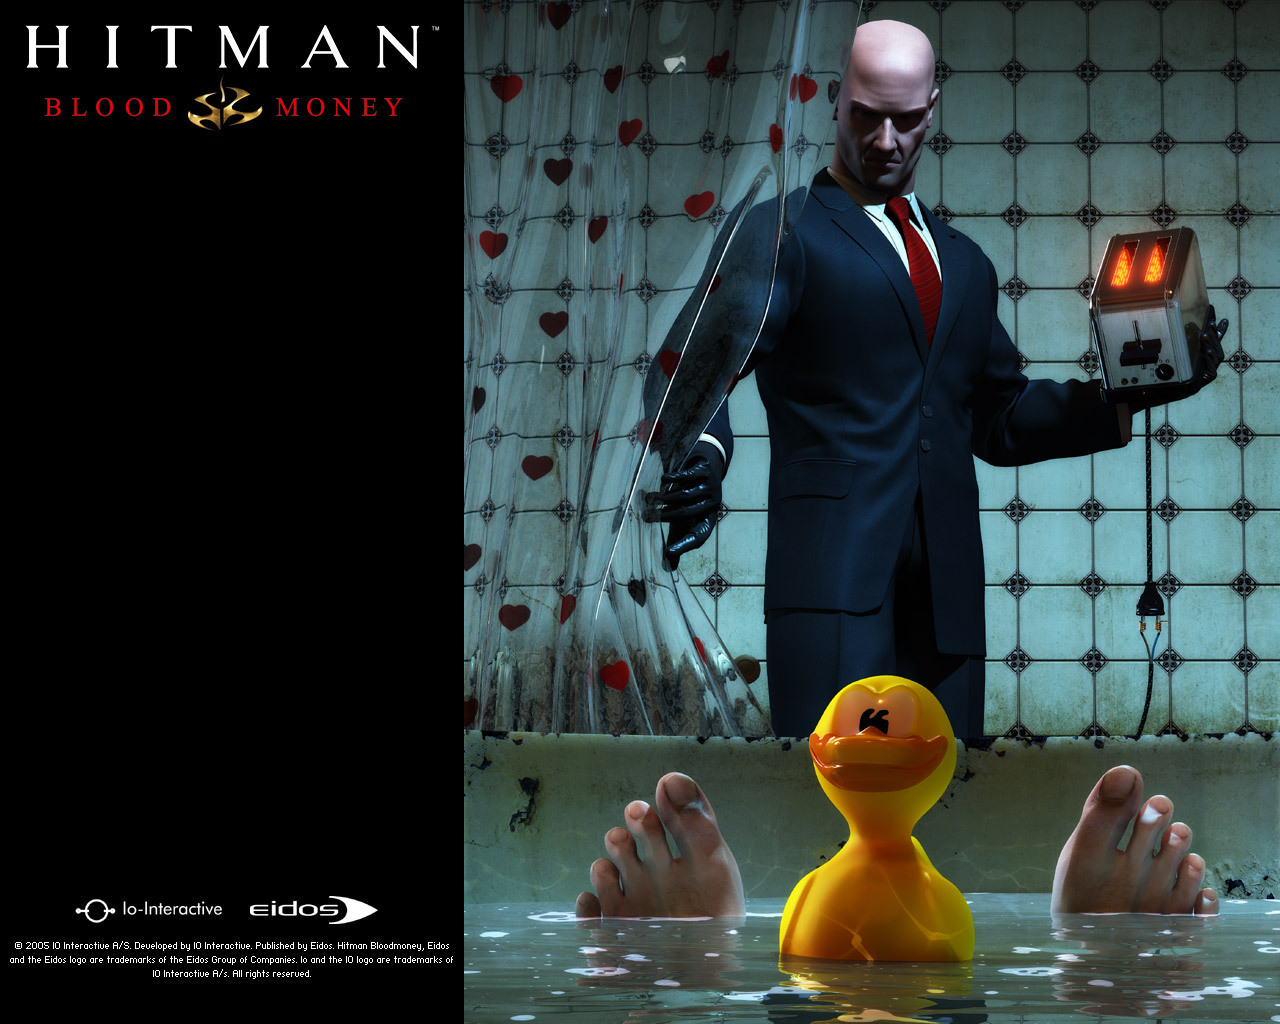 hitman wallpapers   Hitman Wallpaper 7638653 1280x1024